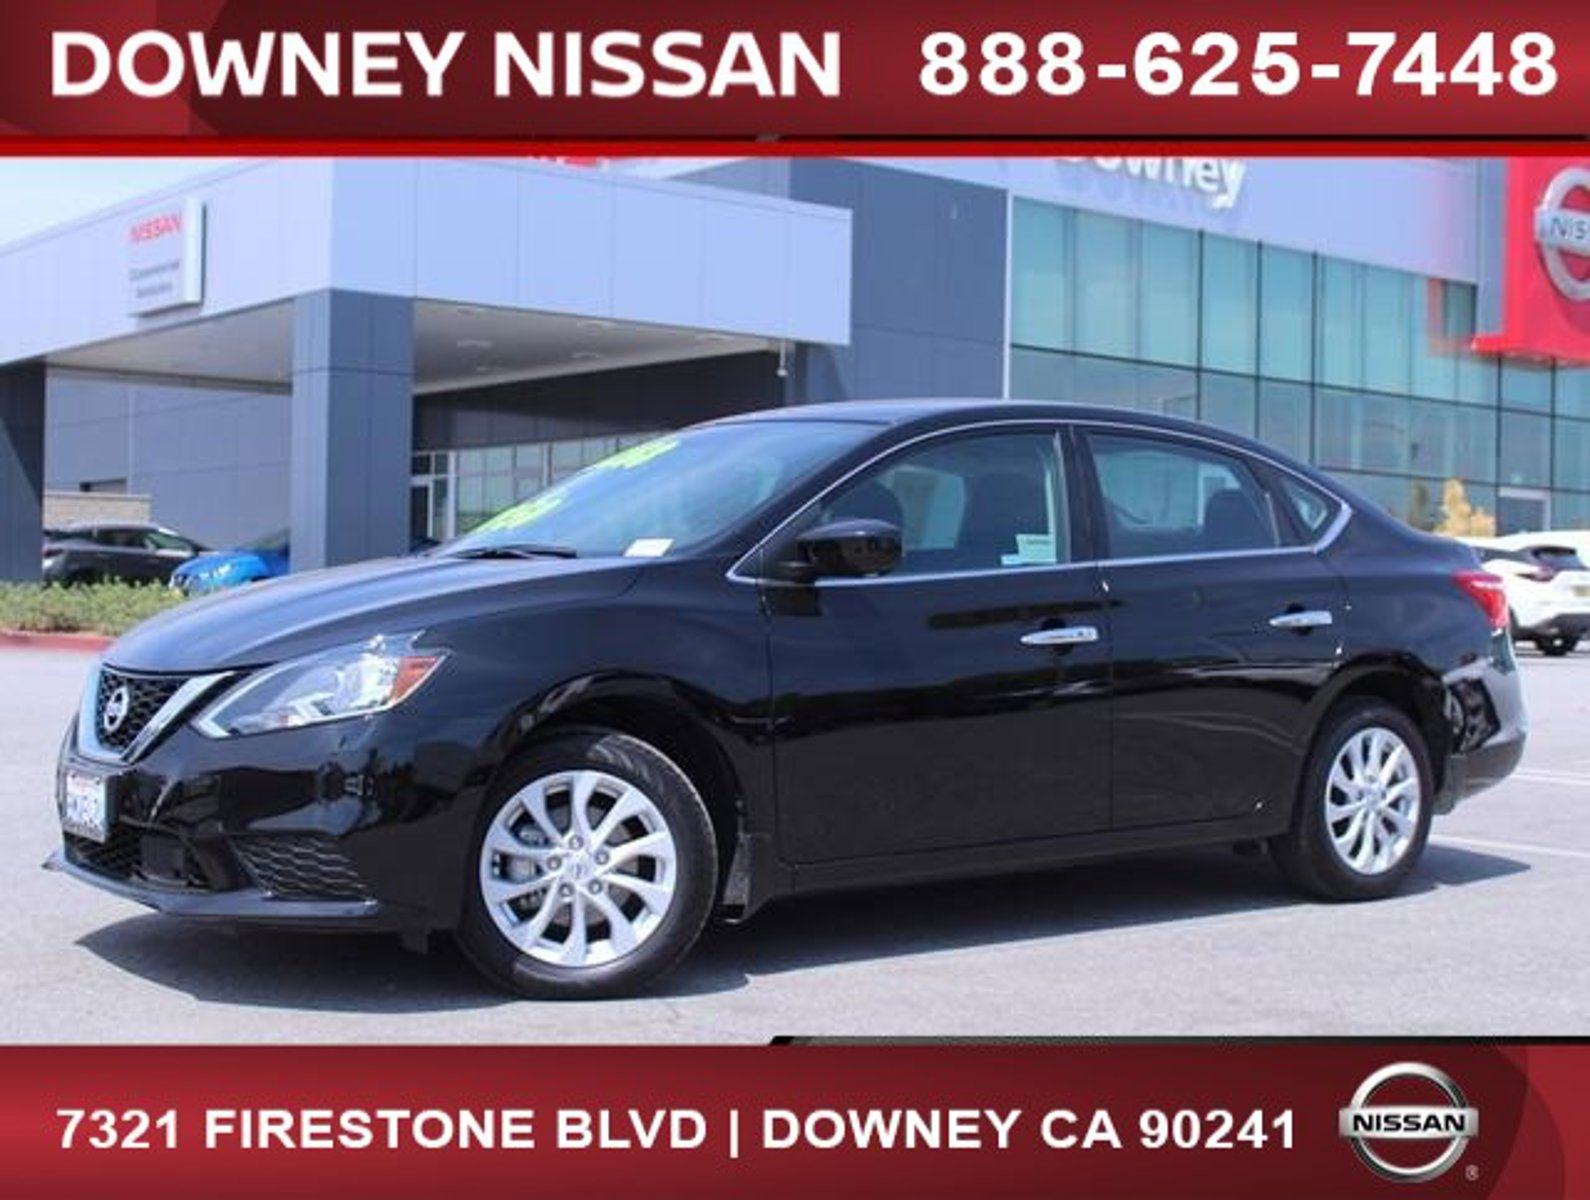 2019 Nissan Sentra SV SV CVT Regular Unleaded I-4 1.8 L/110 [14]